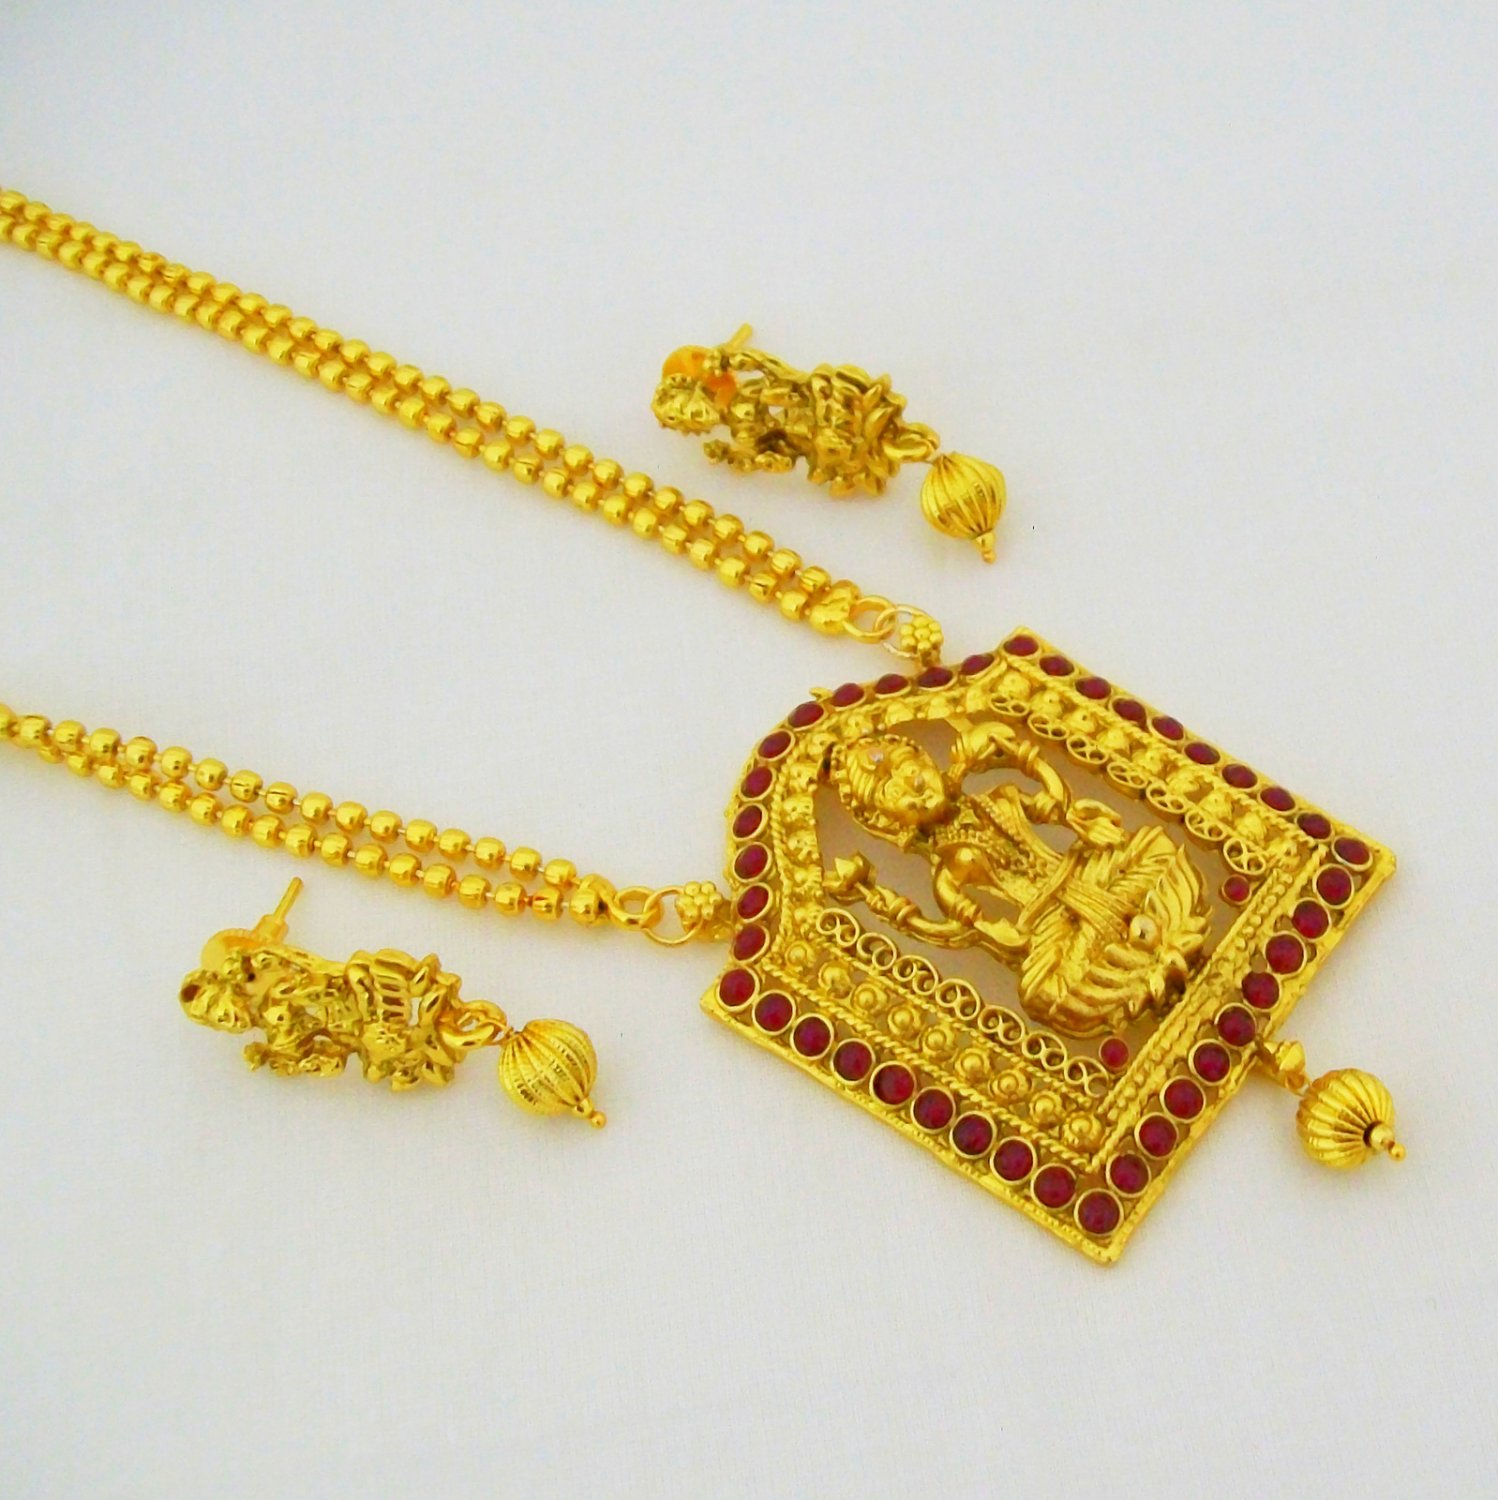 Gold Plated Laxmi Devi Long Chain Nakshi Pendant Necklace Set Indian Temple Jewelry